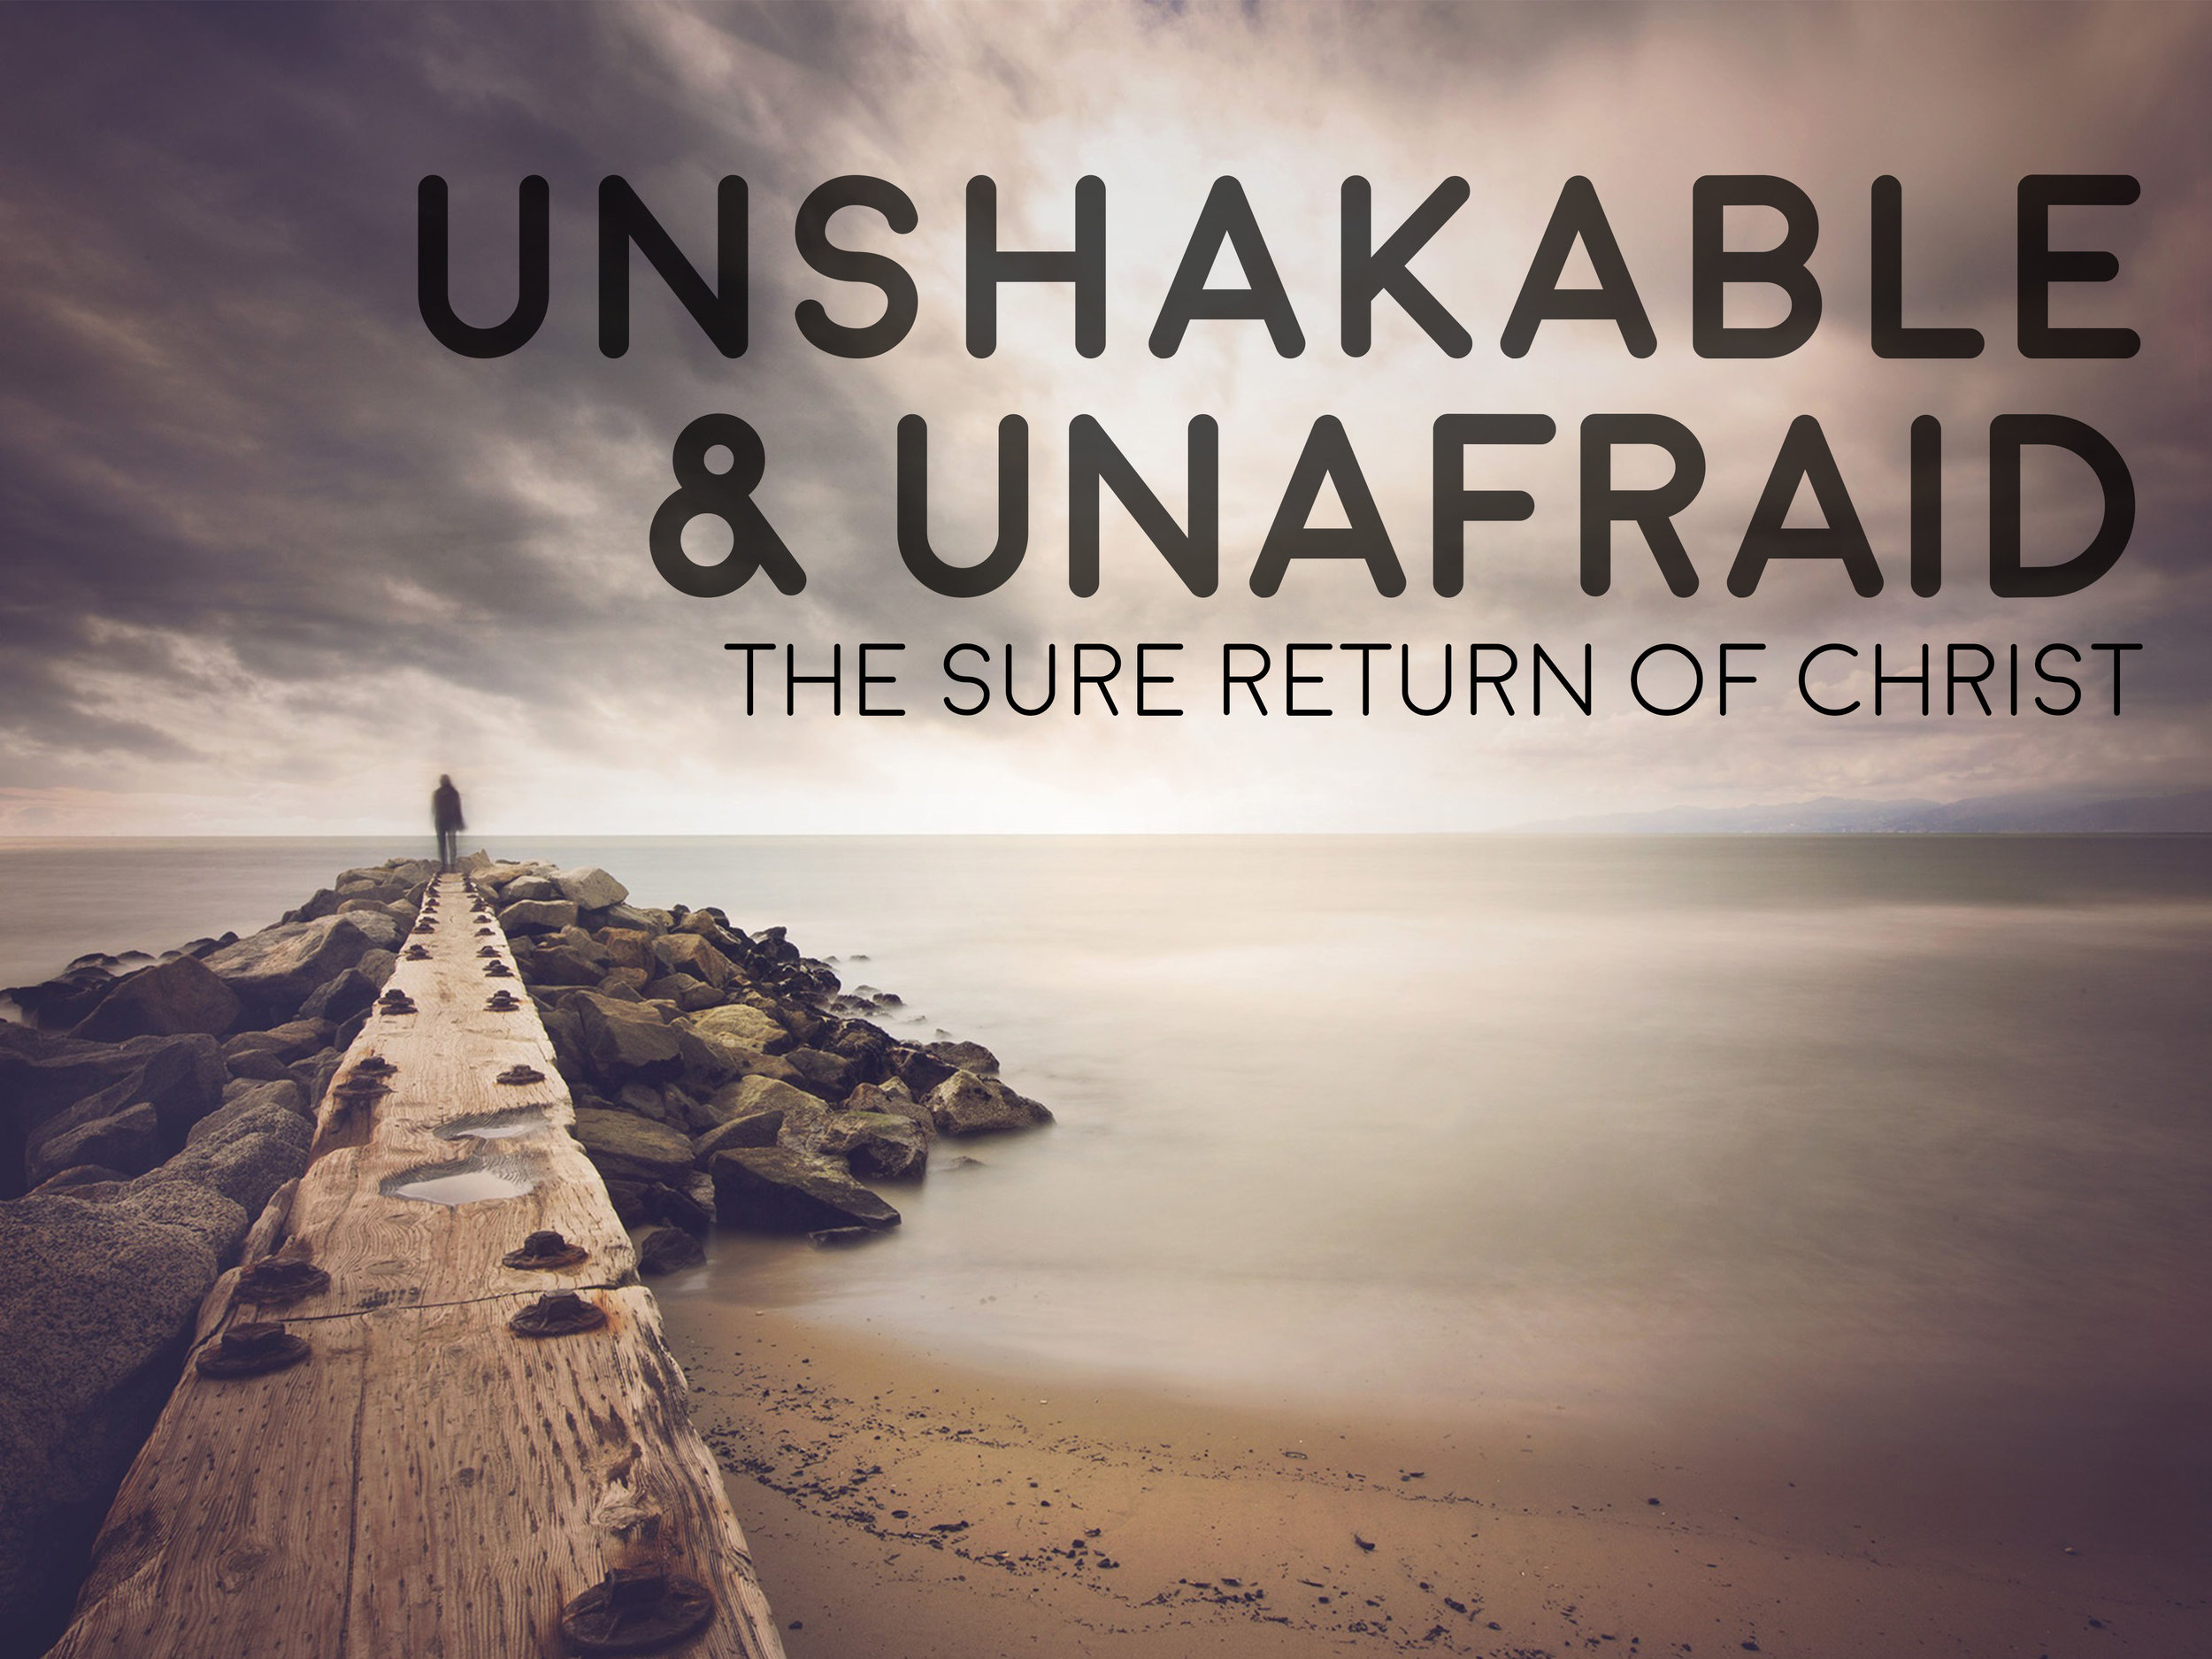 Unshakable and Unafraid - Praying   In Light of His Coming